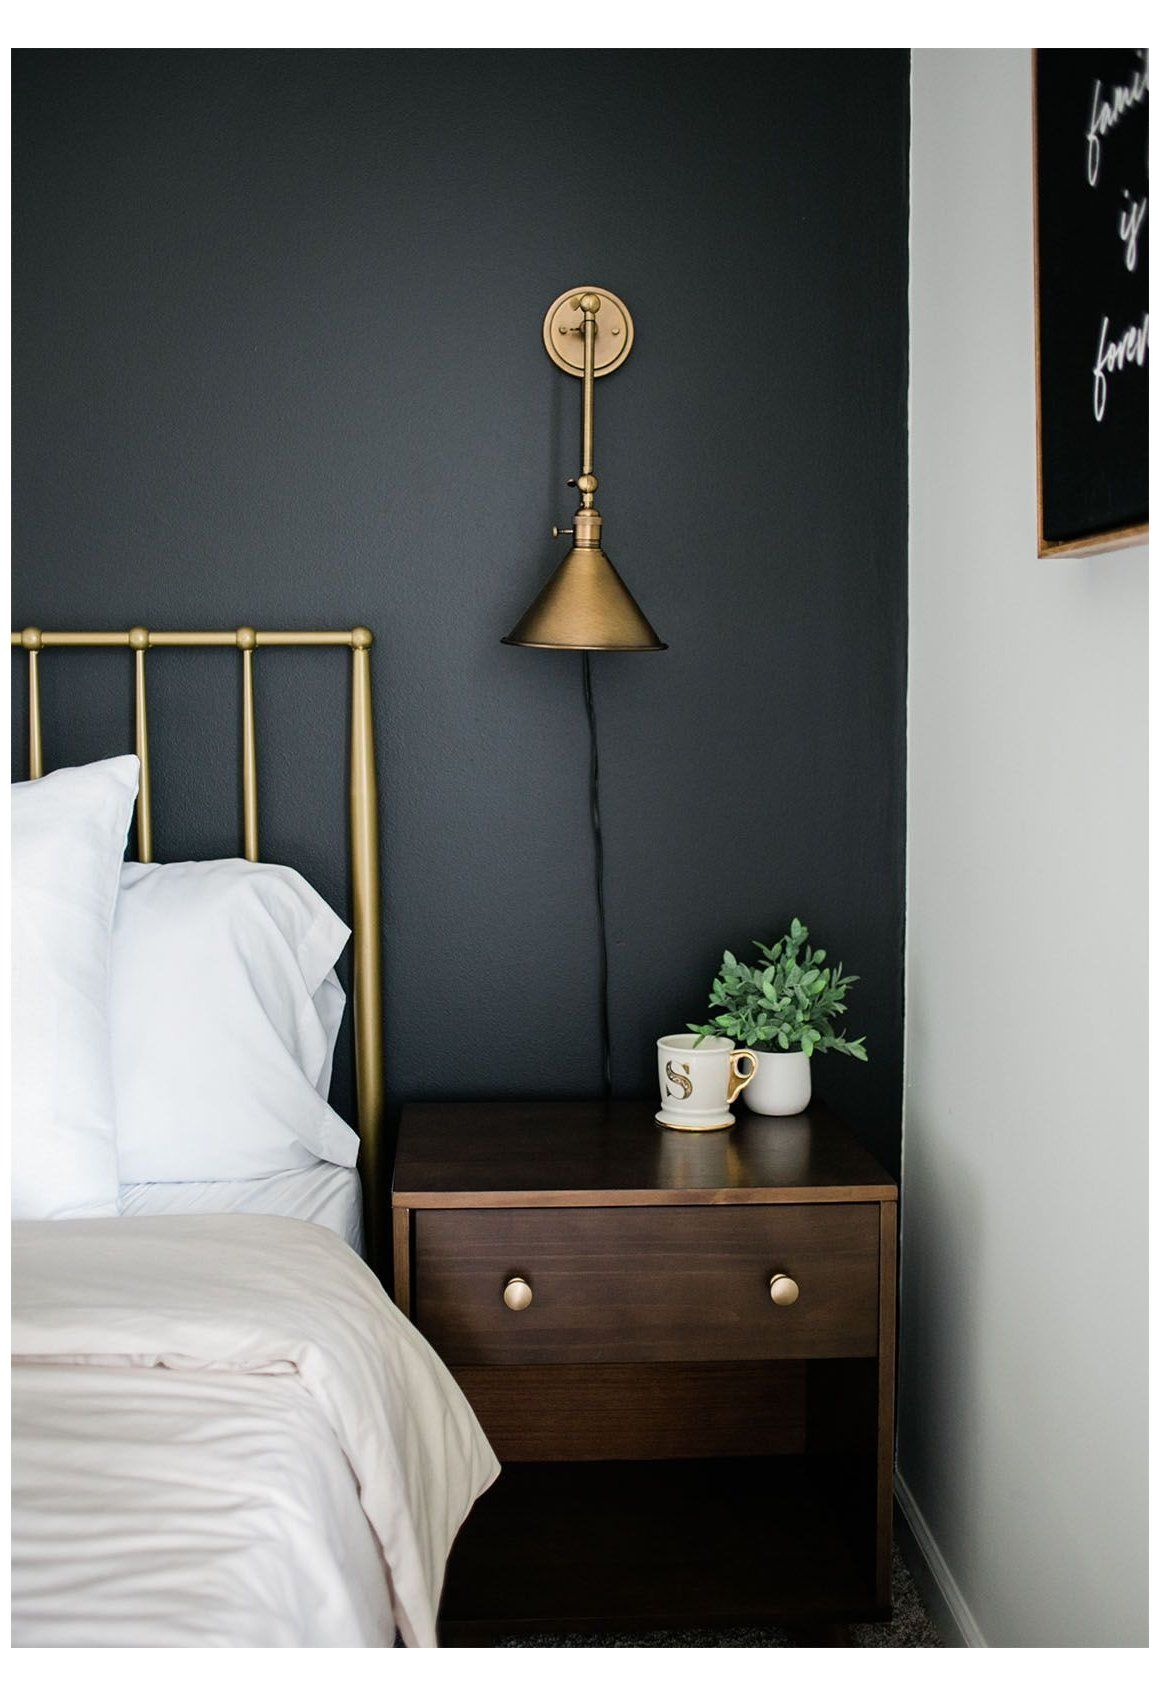 How To Style A Black Accent Wall In A Bedroom Clare Walnut Bedroom Furniture Decor Wall Guest Bedroom Inspiration Black Accent Walls Accent Wall Bedroom